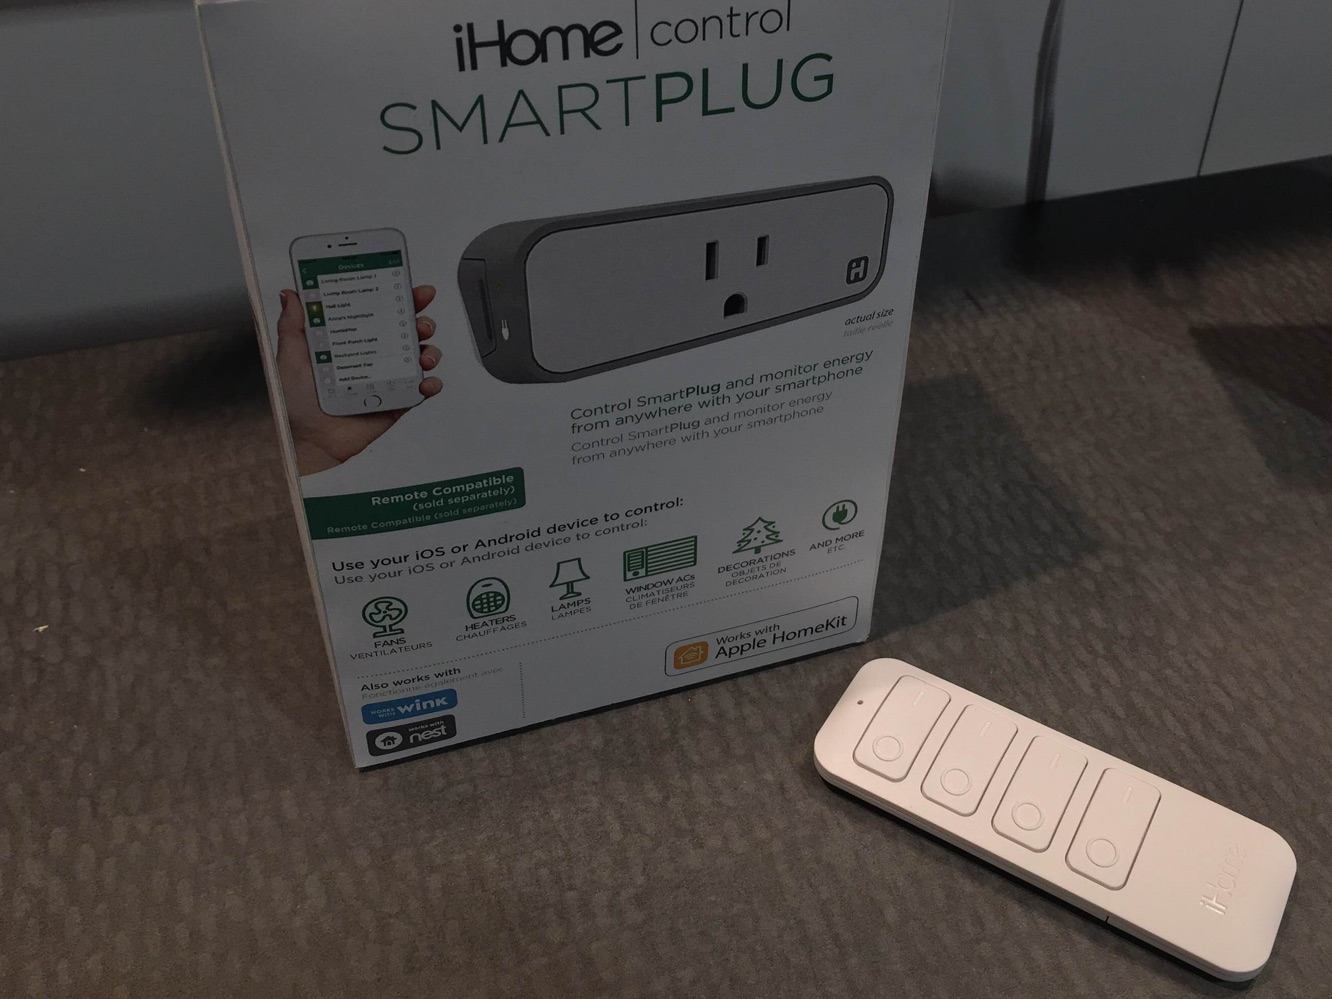 iHome unveils new SmartPlug, speakers at CES 2016